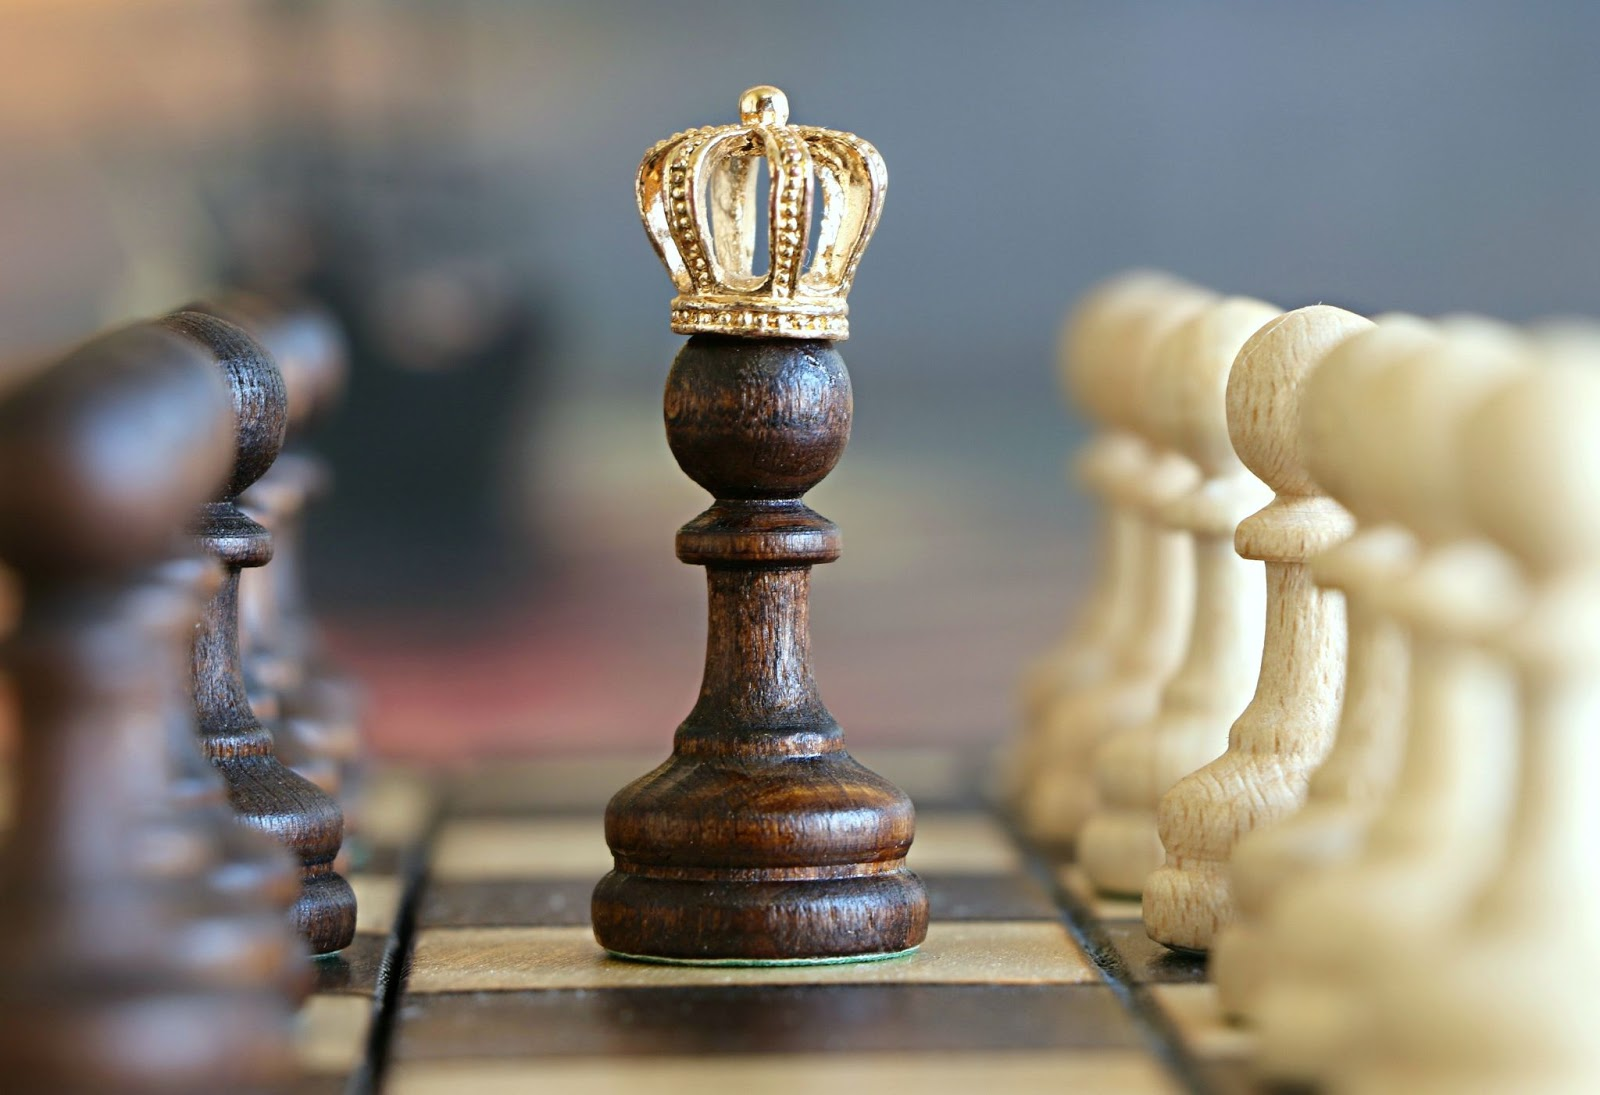 Black chess piece with gold crown on top